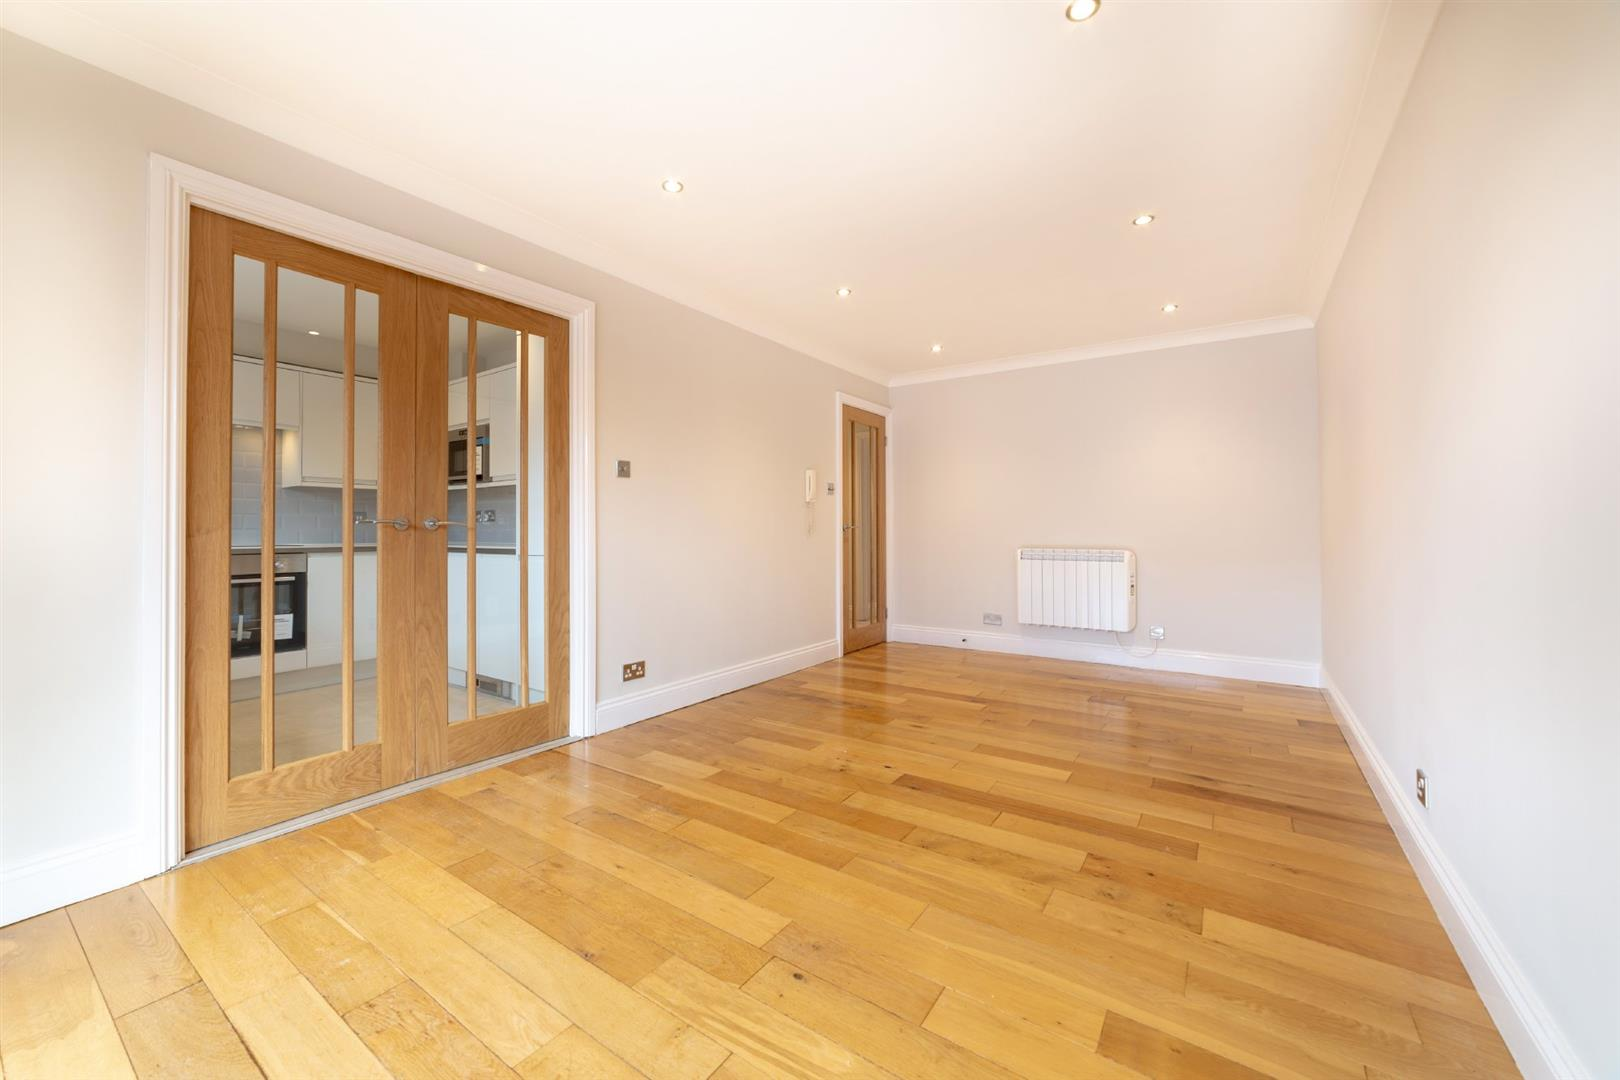 2 bed apartment to rent in Hawthorn Mews, Gosforth - Property Image 1